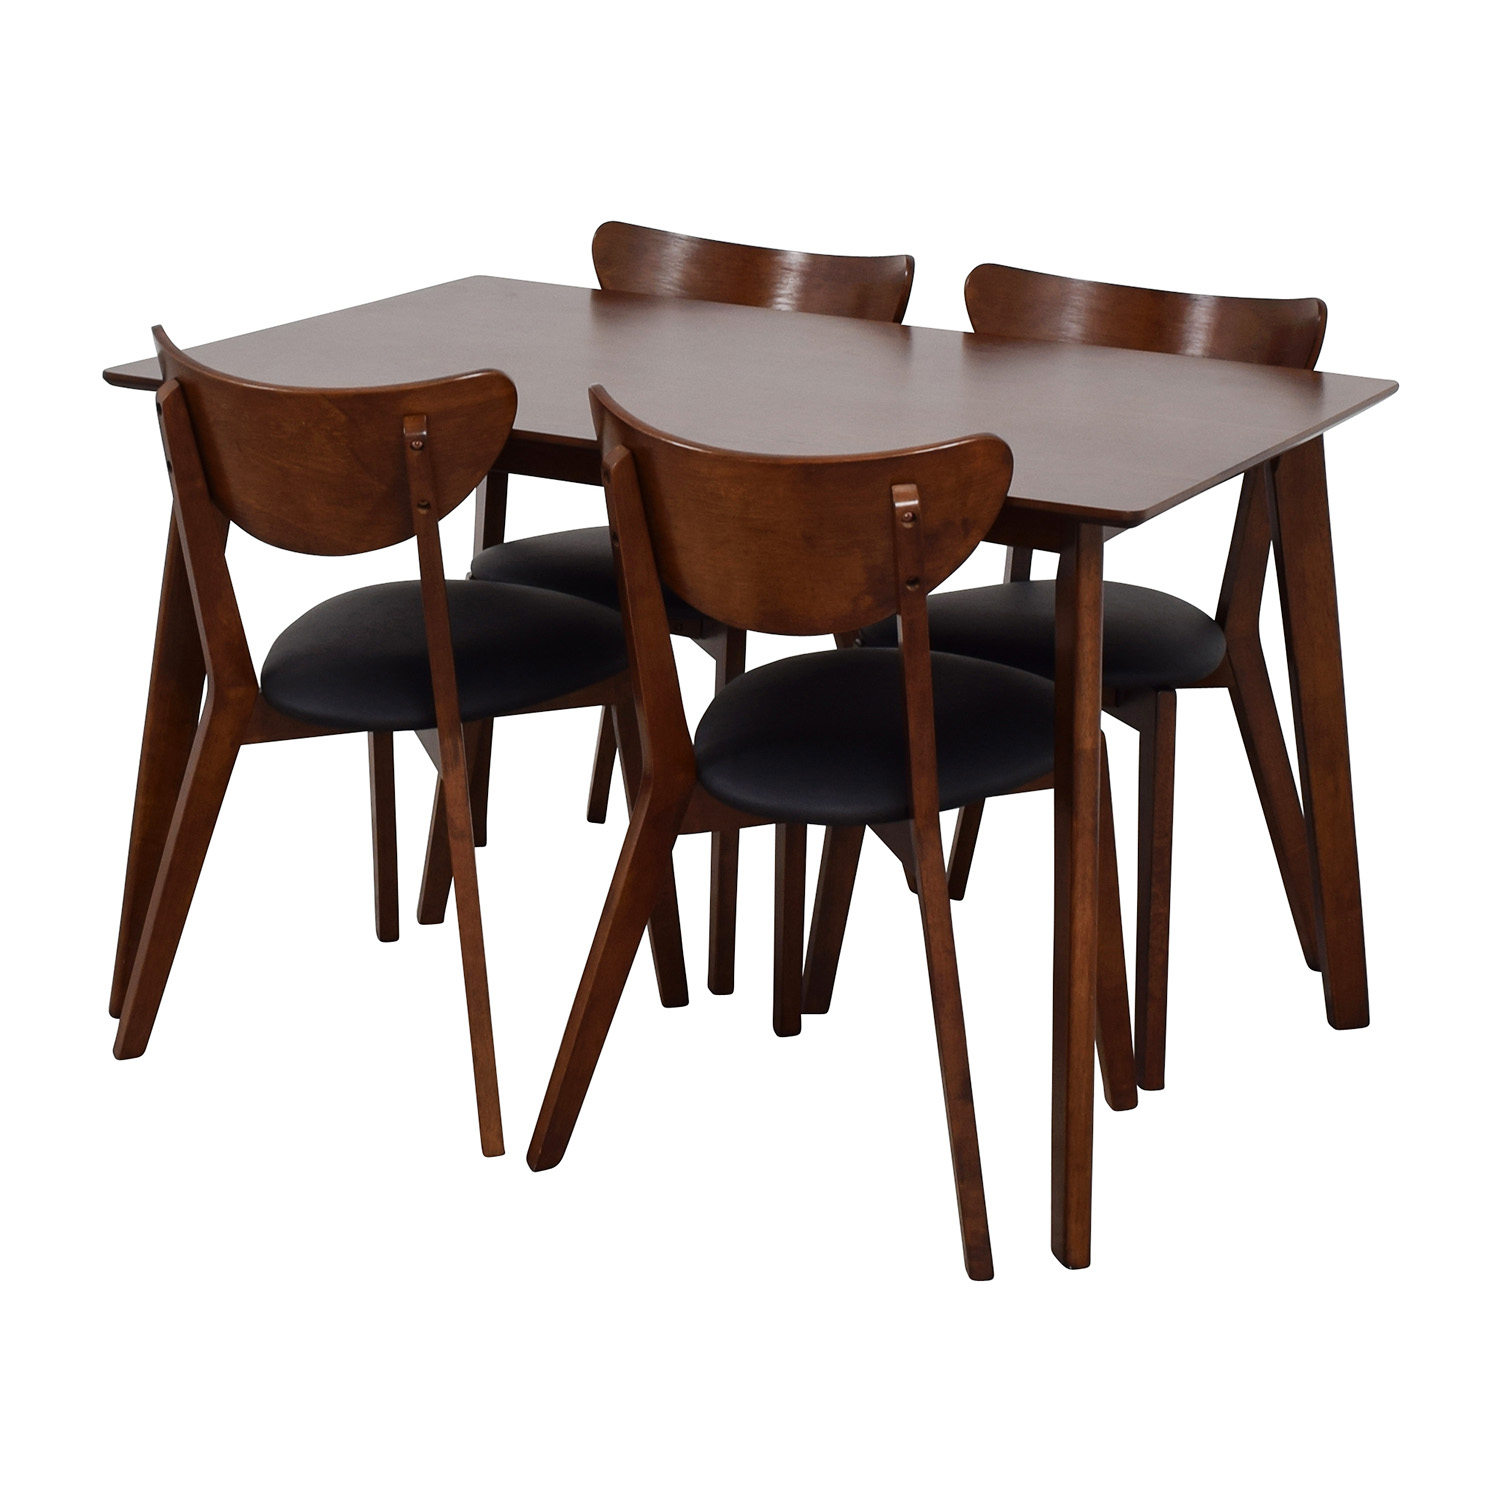 35 off wholesale interiors brown dining table set with four chairs tables - Dining tables buy online ...